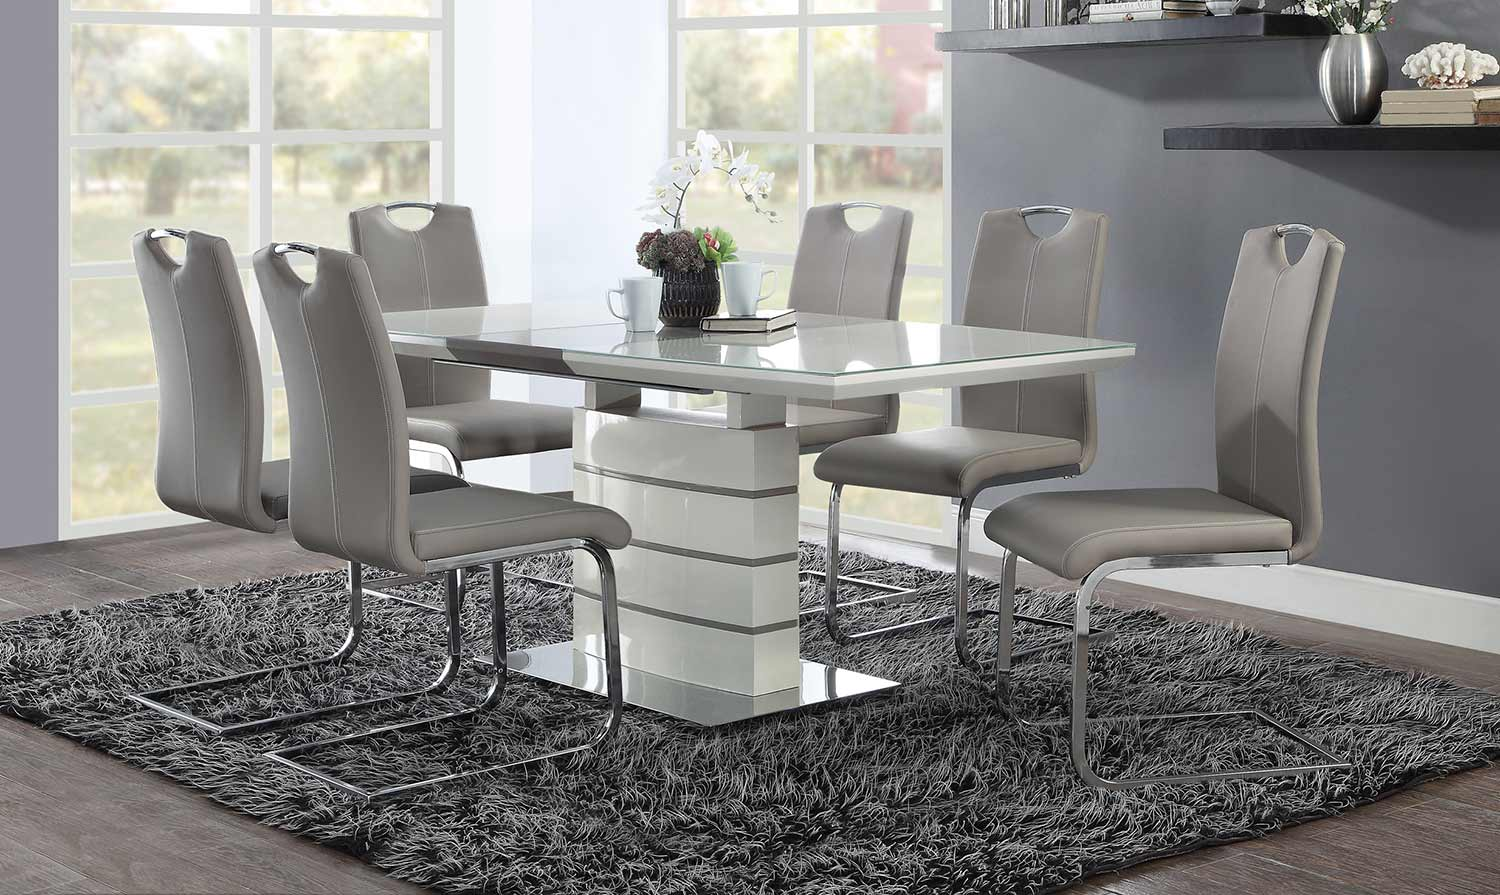 Homelegance Glissand Dining Set - Glossy - Grey-Taupe Bi-Cast Vinyl